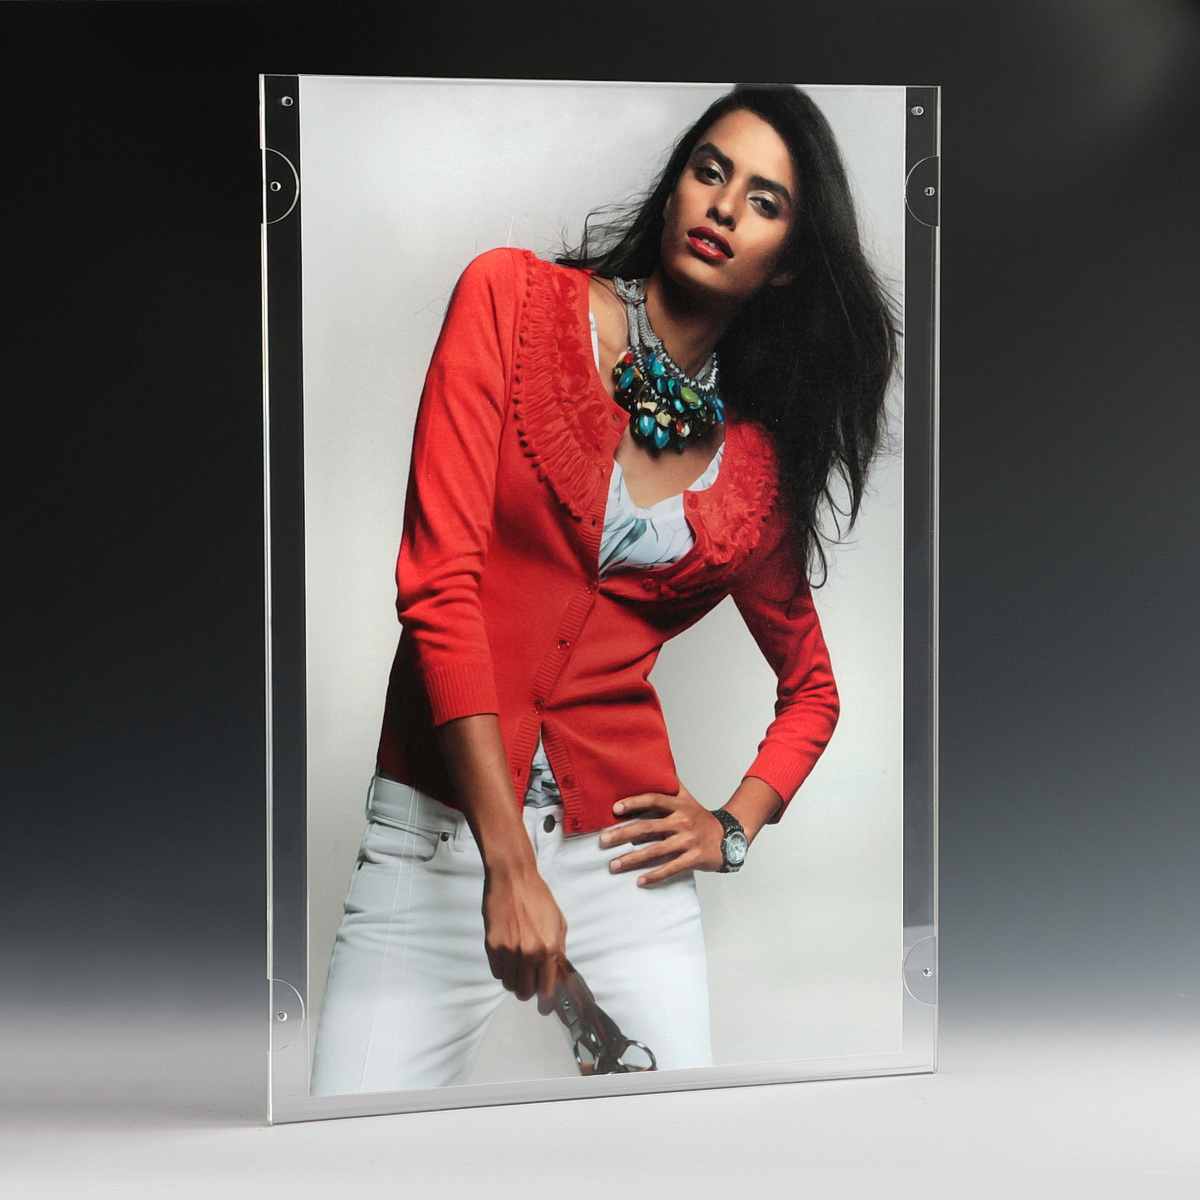 Clear Acrylic Wall Frame with magnets, accommodates  11 x 17 media (sold Without Hardware)